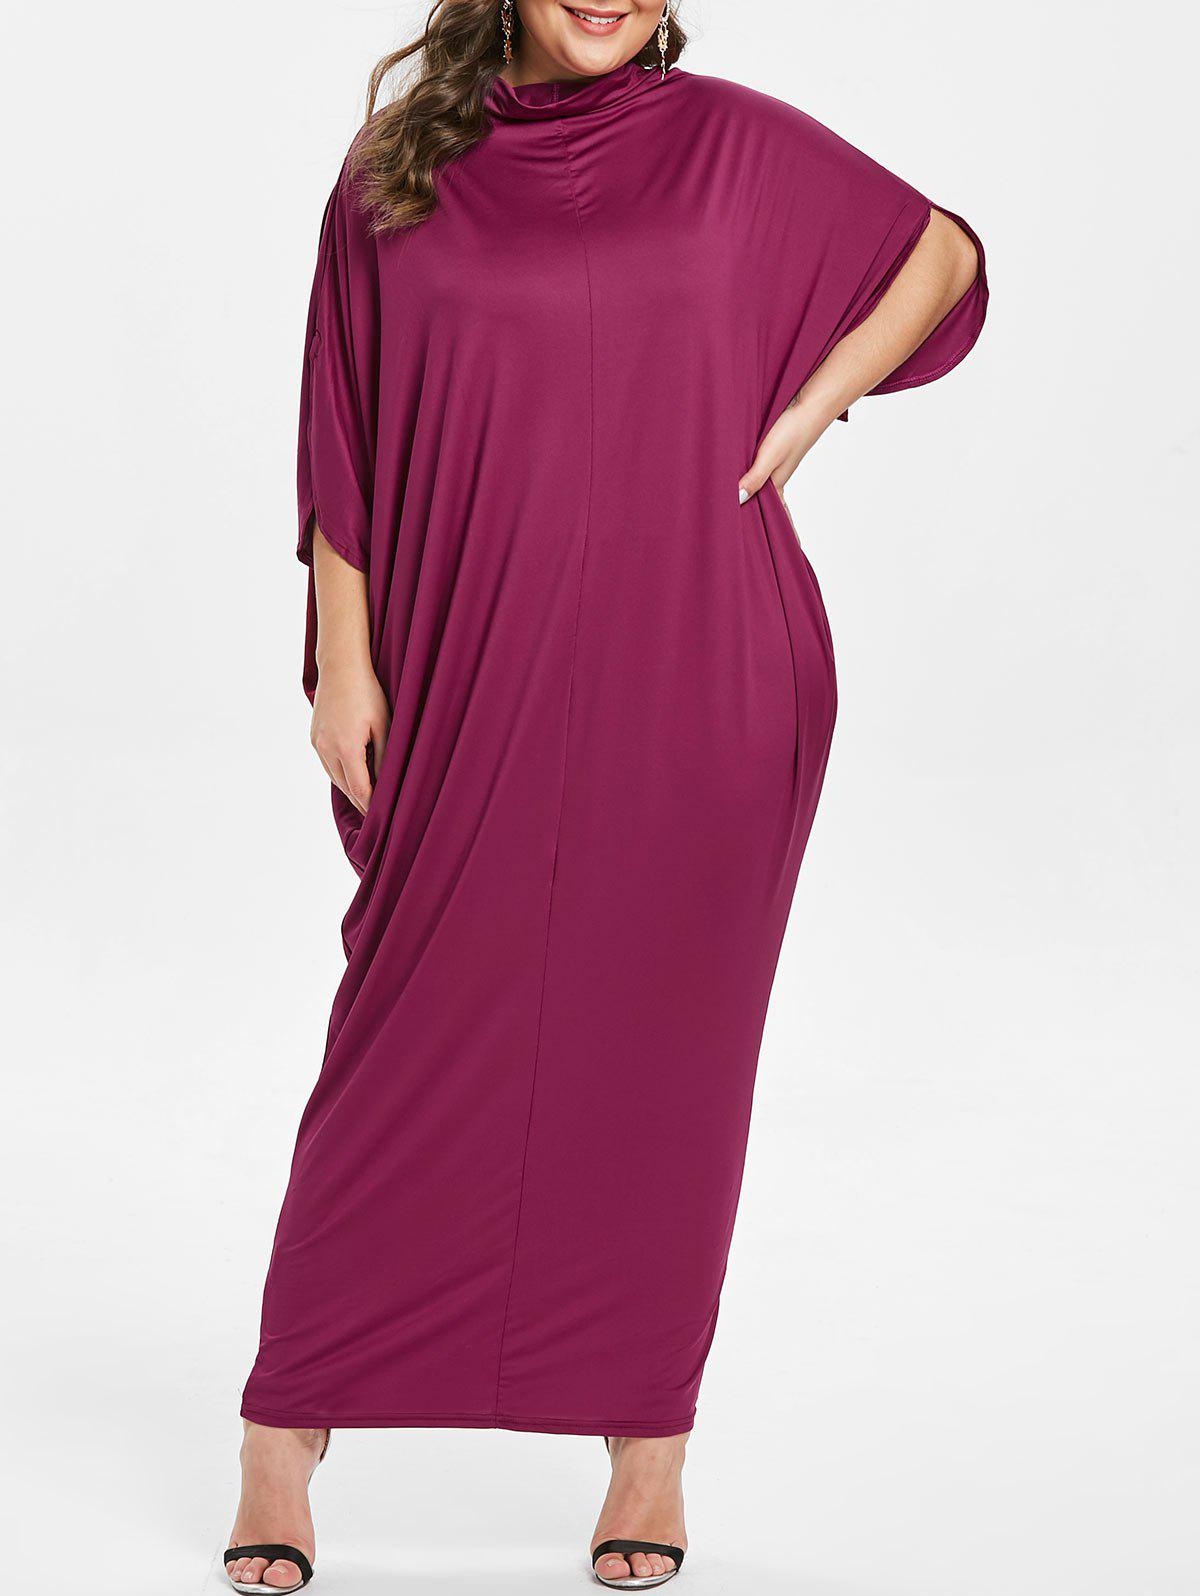 New Cowl Neck Plus Size Slit Sleeve Maxi Dress